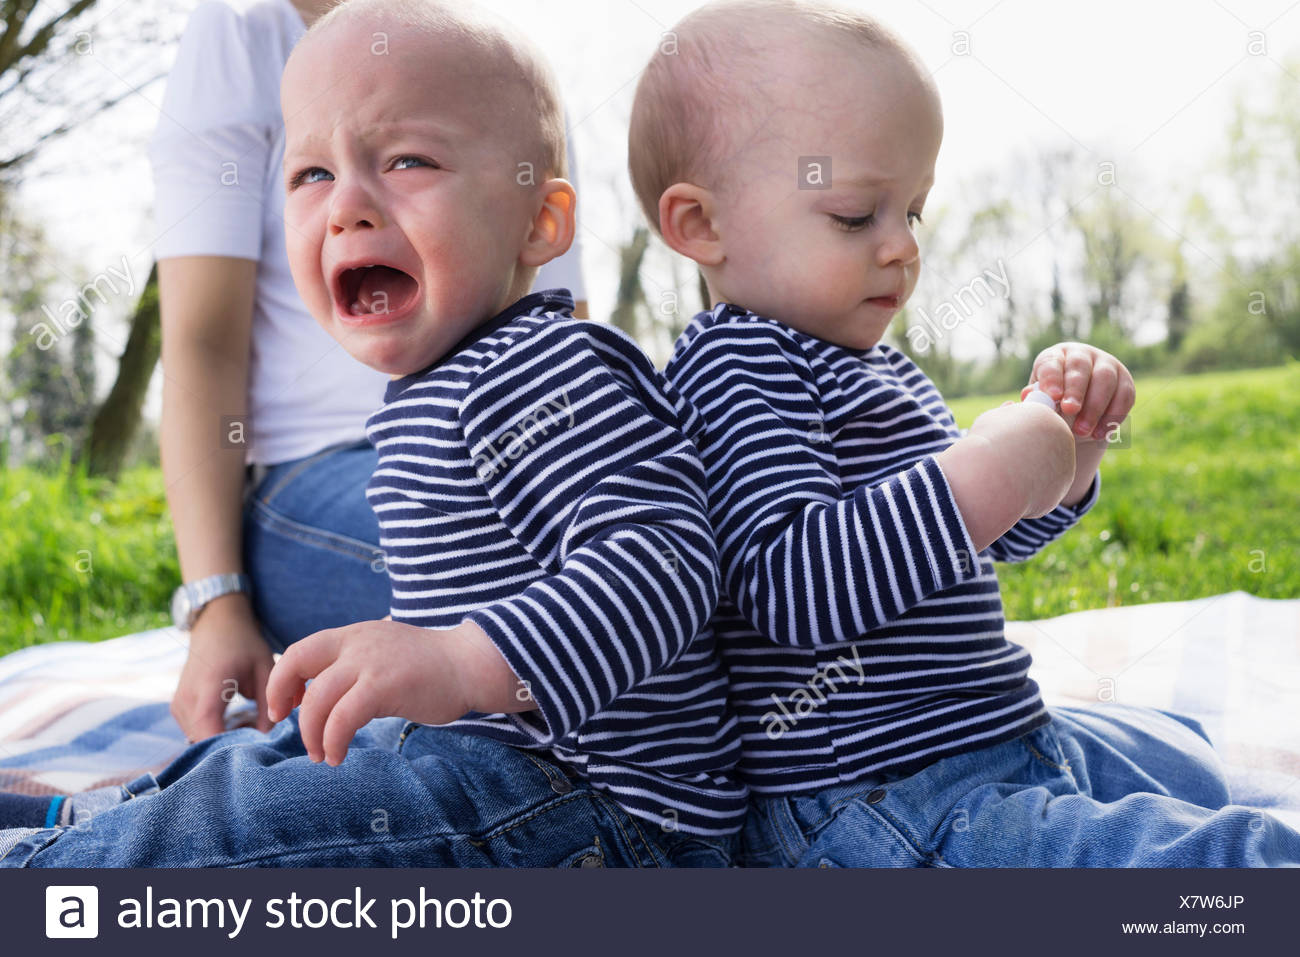 Baby twin brothers back to back on picnic blanket in field - Stock Image